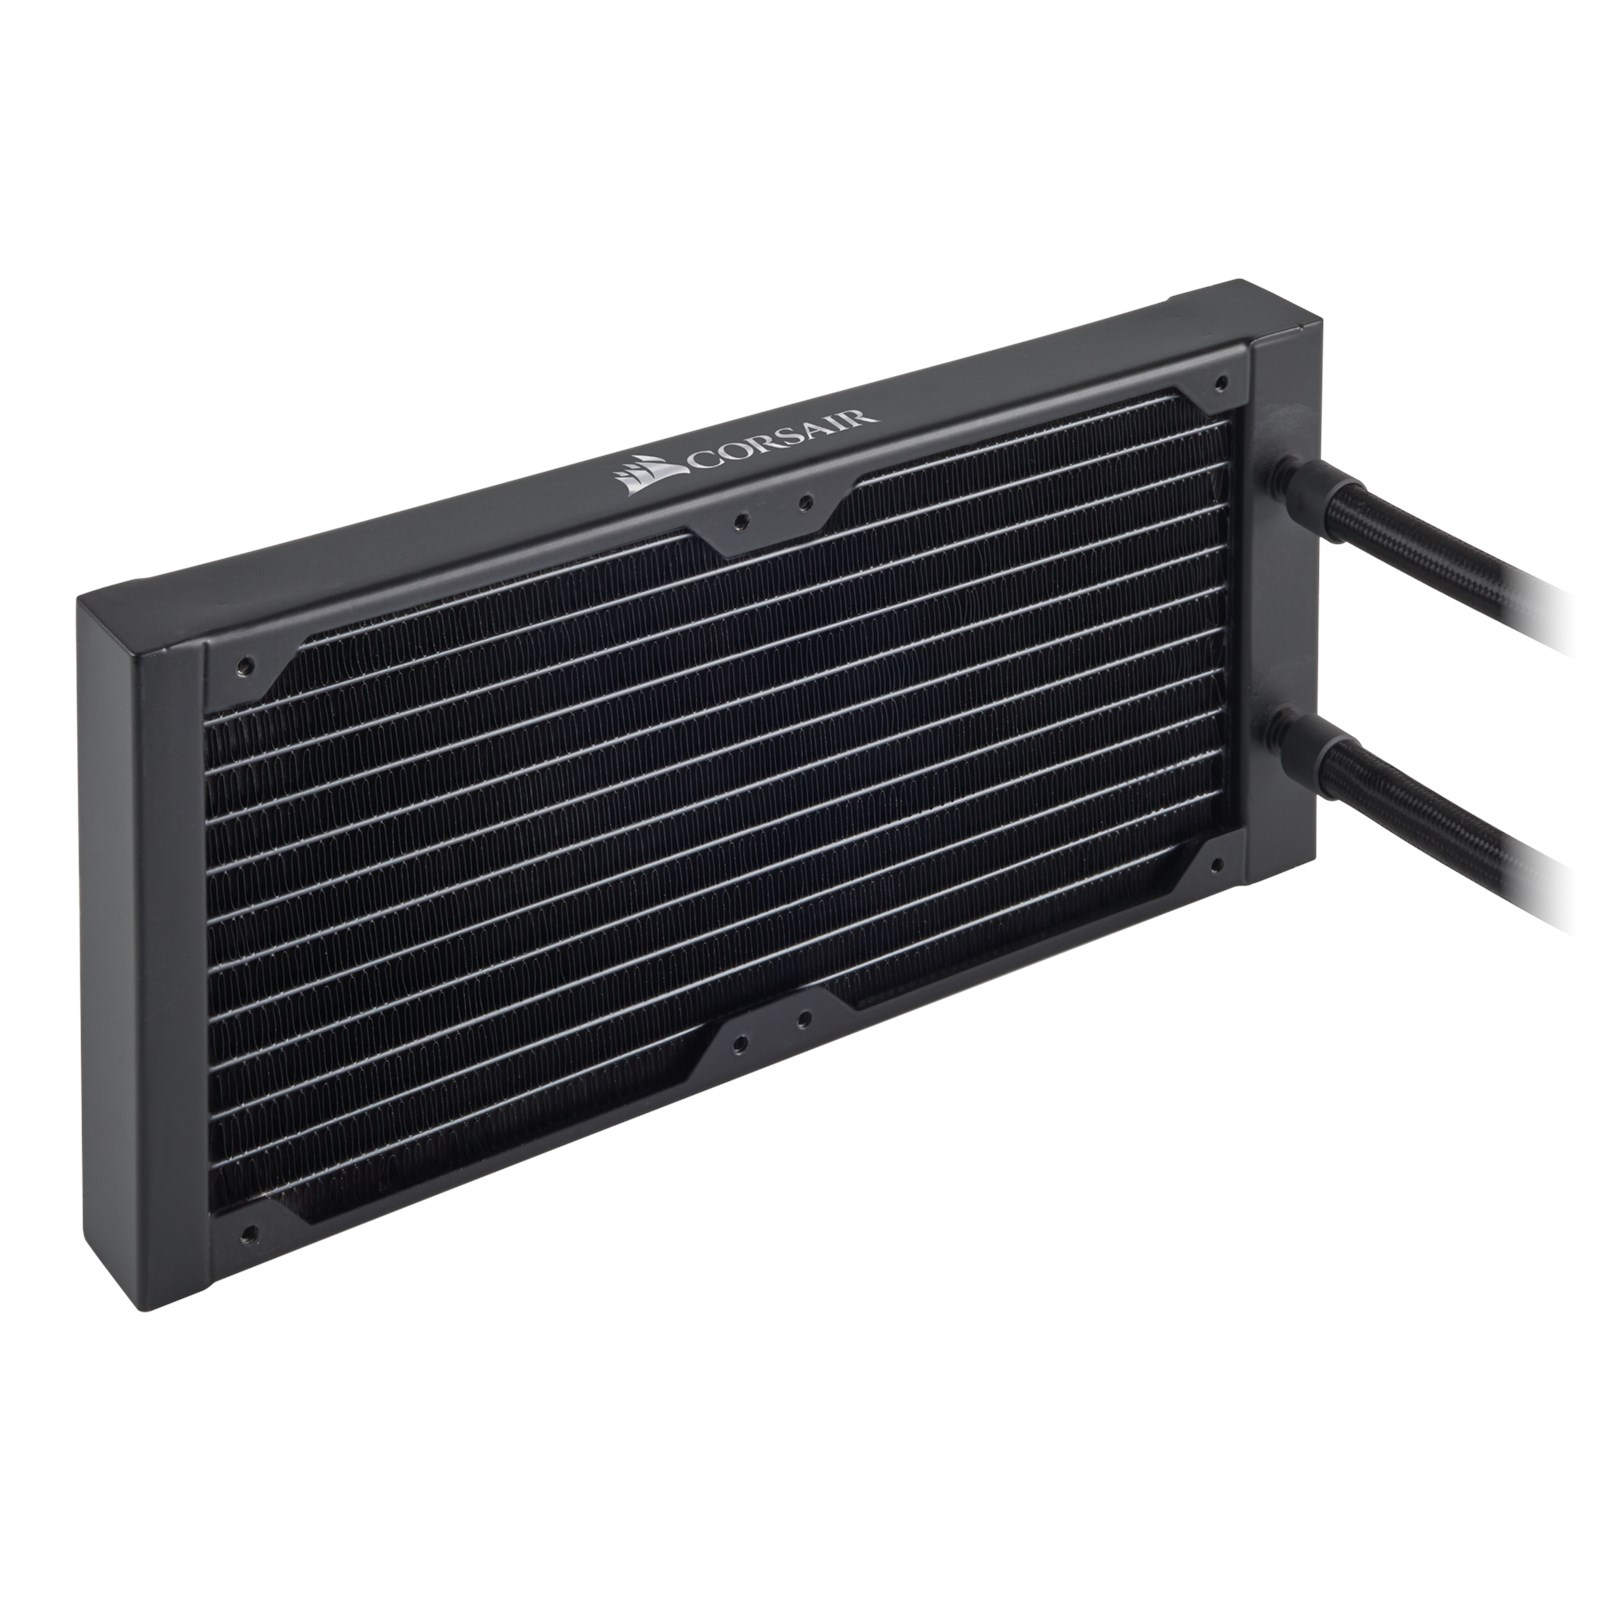 Corsair Hydro Series H100i Pro Rgb 240mm All In One Liquid Cpu V2 Water Cooler Add To Comparison